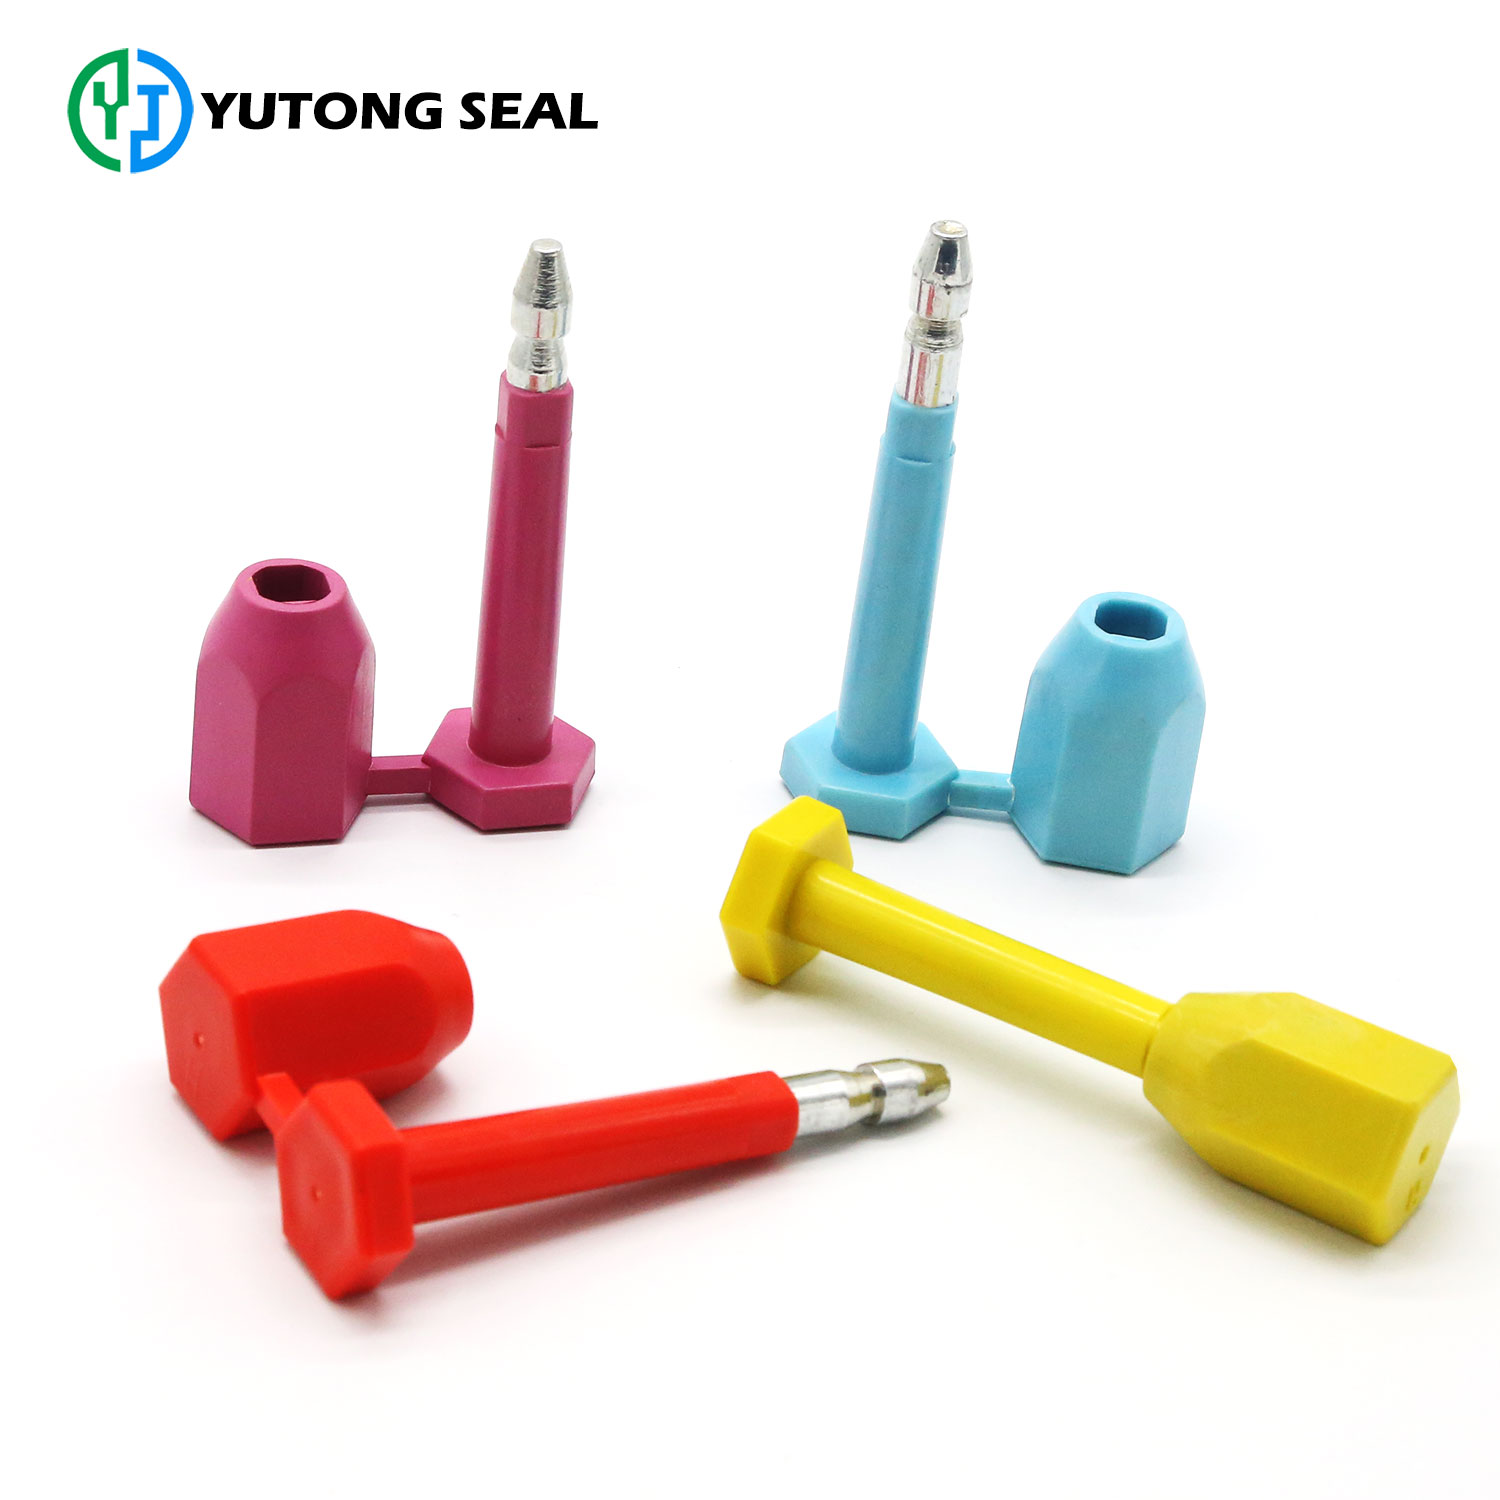 Customs security container seals with low price heavy duty bolt seal